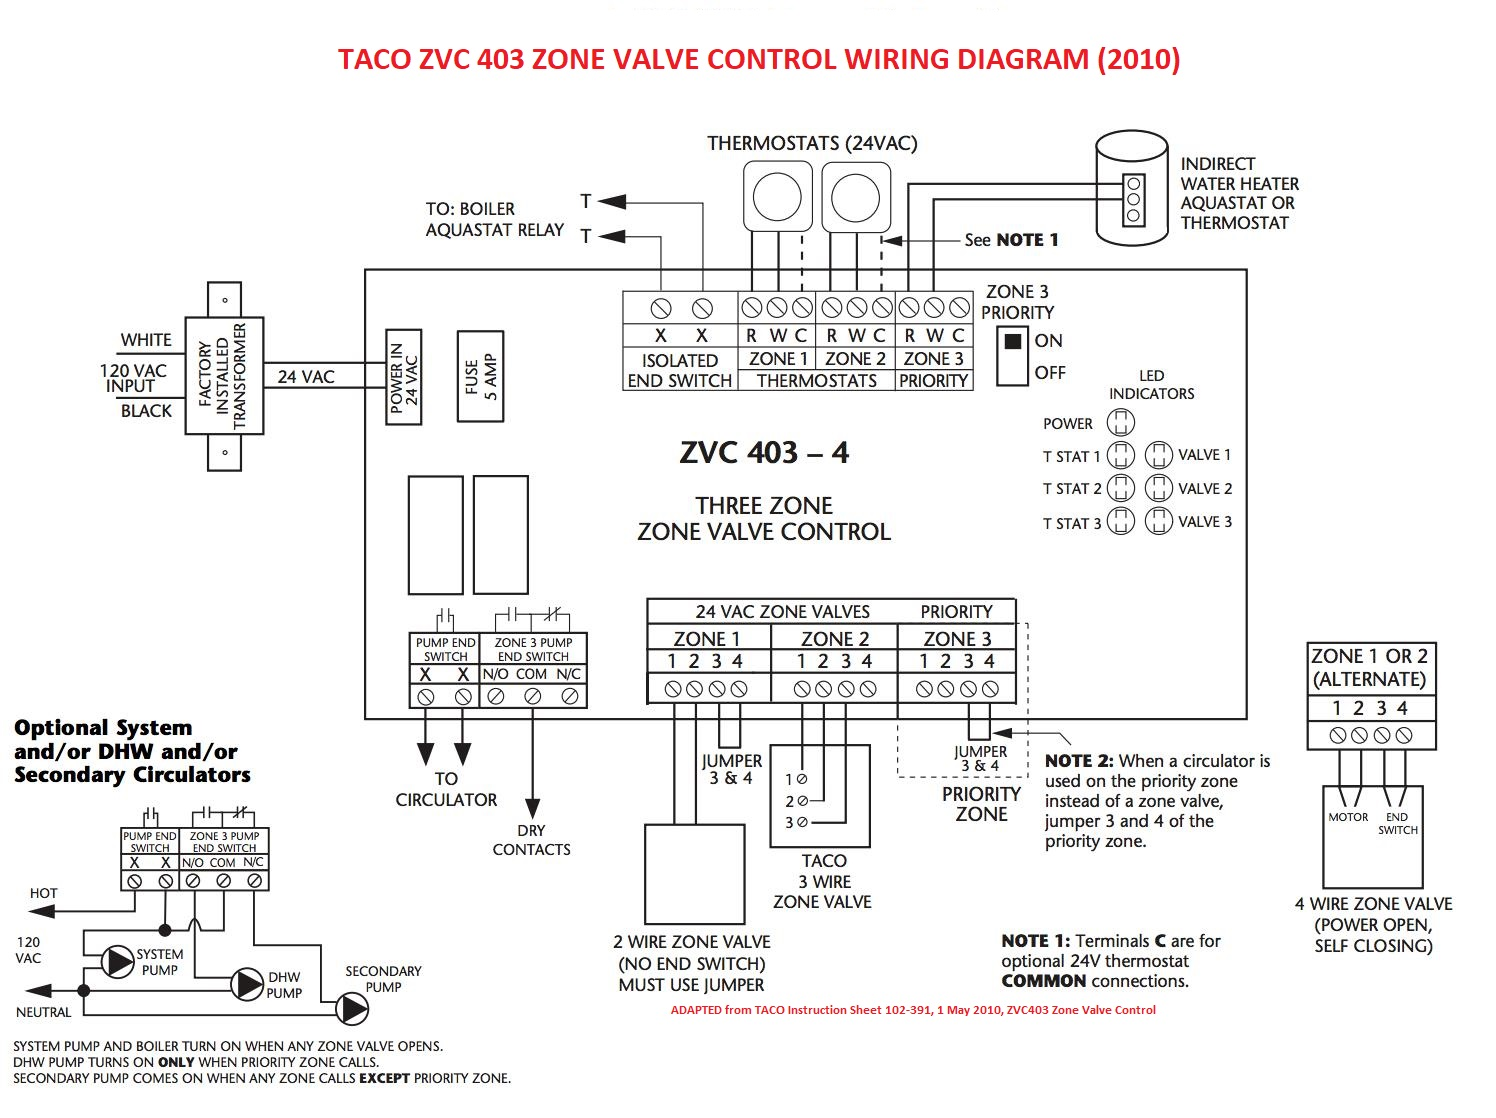 Zone Valve Wiring Installation Instructions Guide To Heating Standard 12 Volt Solenoid Diagram Taci Zvc493 Click Enlarge At